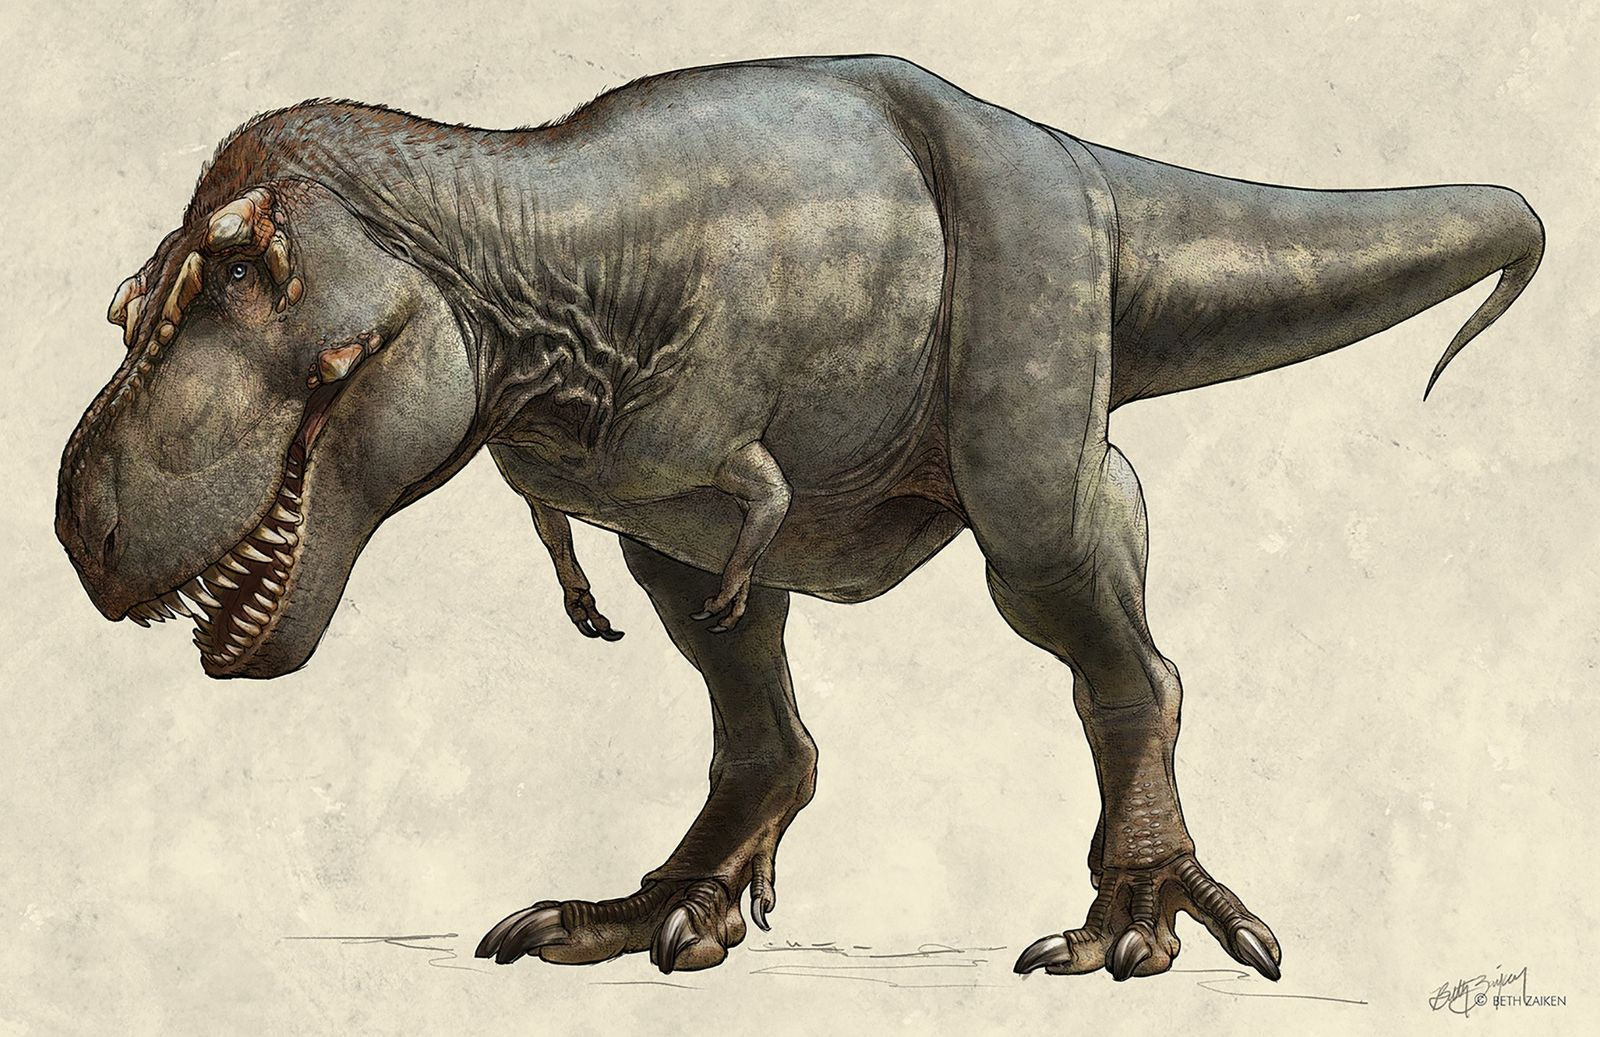 World's biggest T. rex discovered